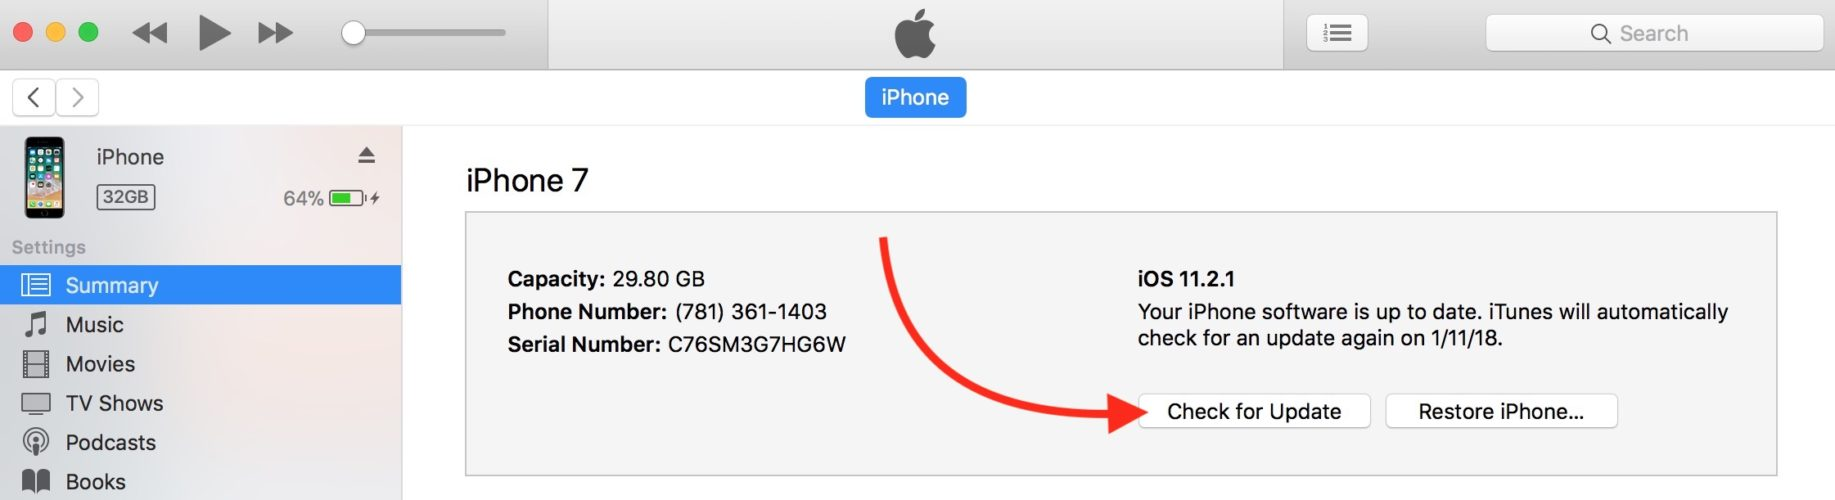 how to make itunes download app updates automatically